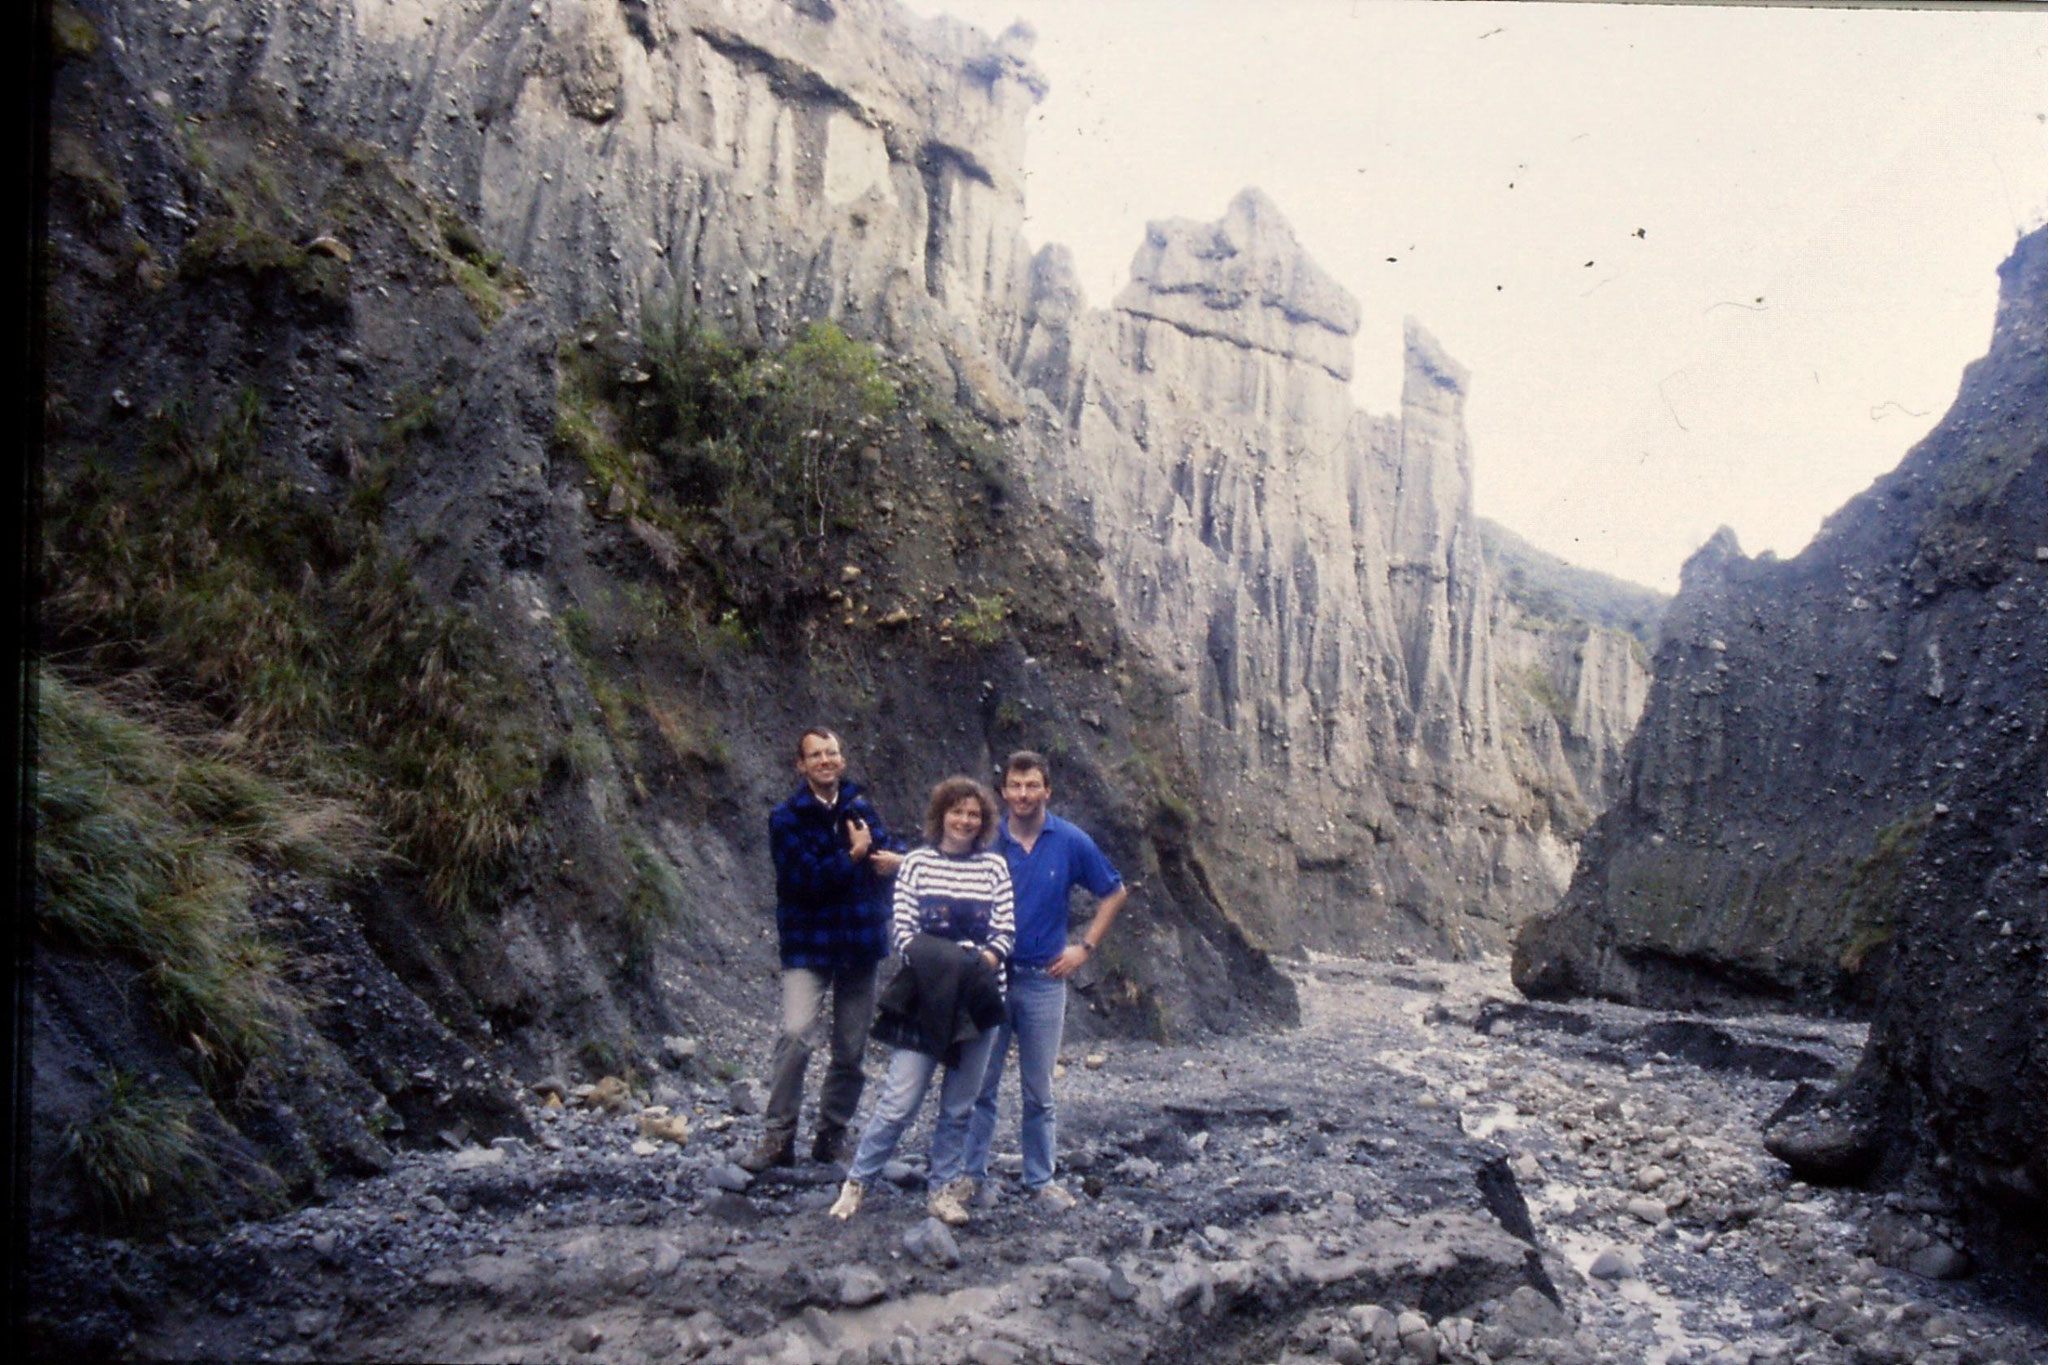 26/8/1990: 11:  Putangirua Pinnacles, R Sandra and Duncan